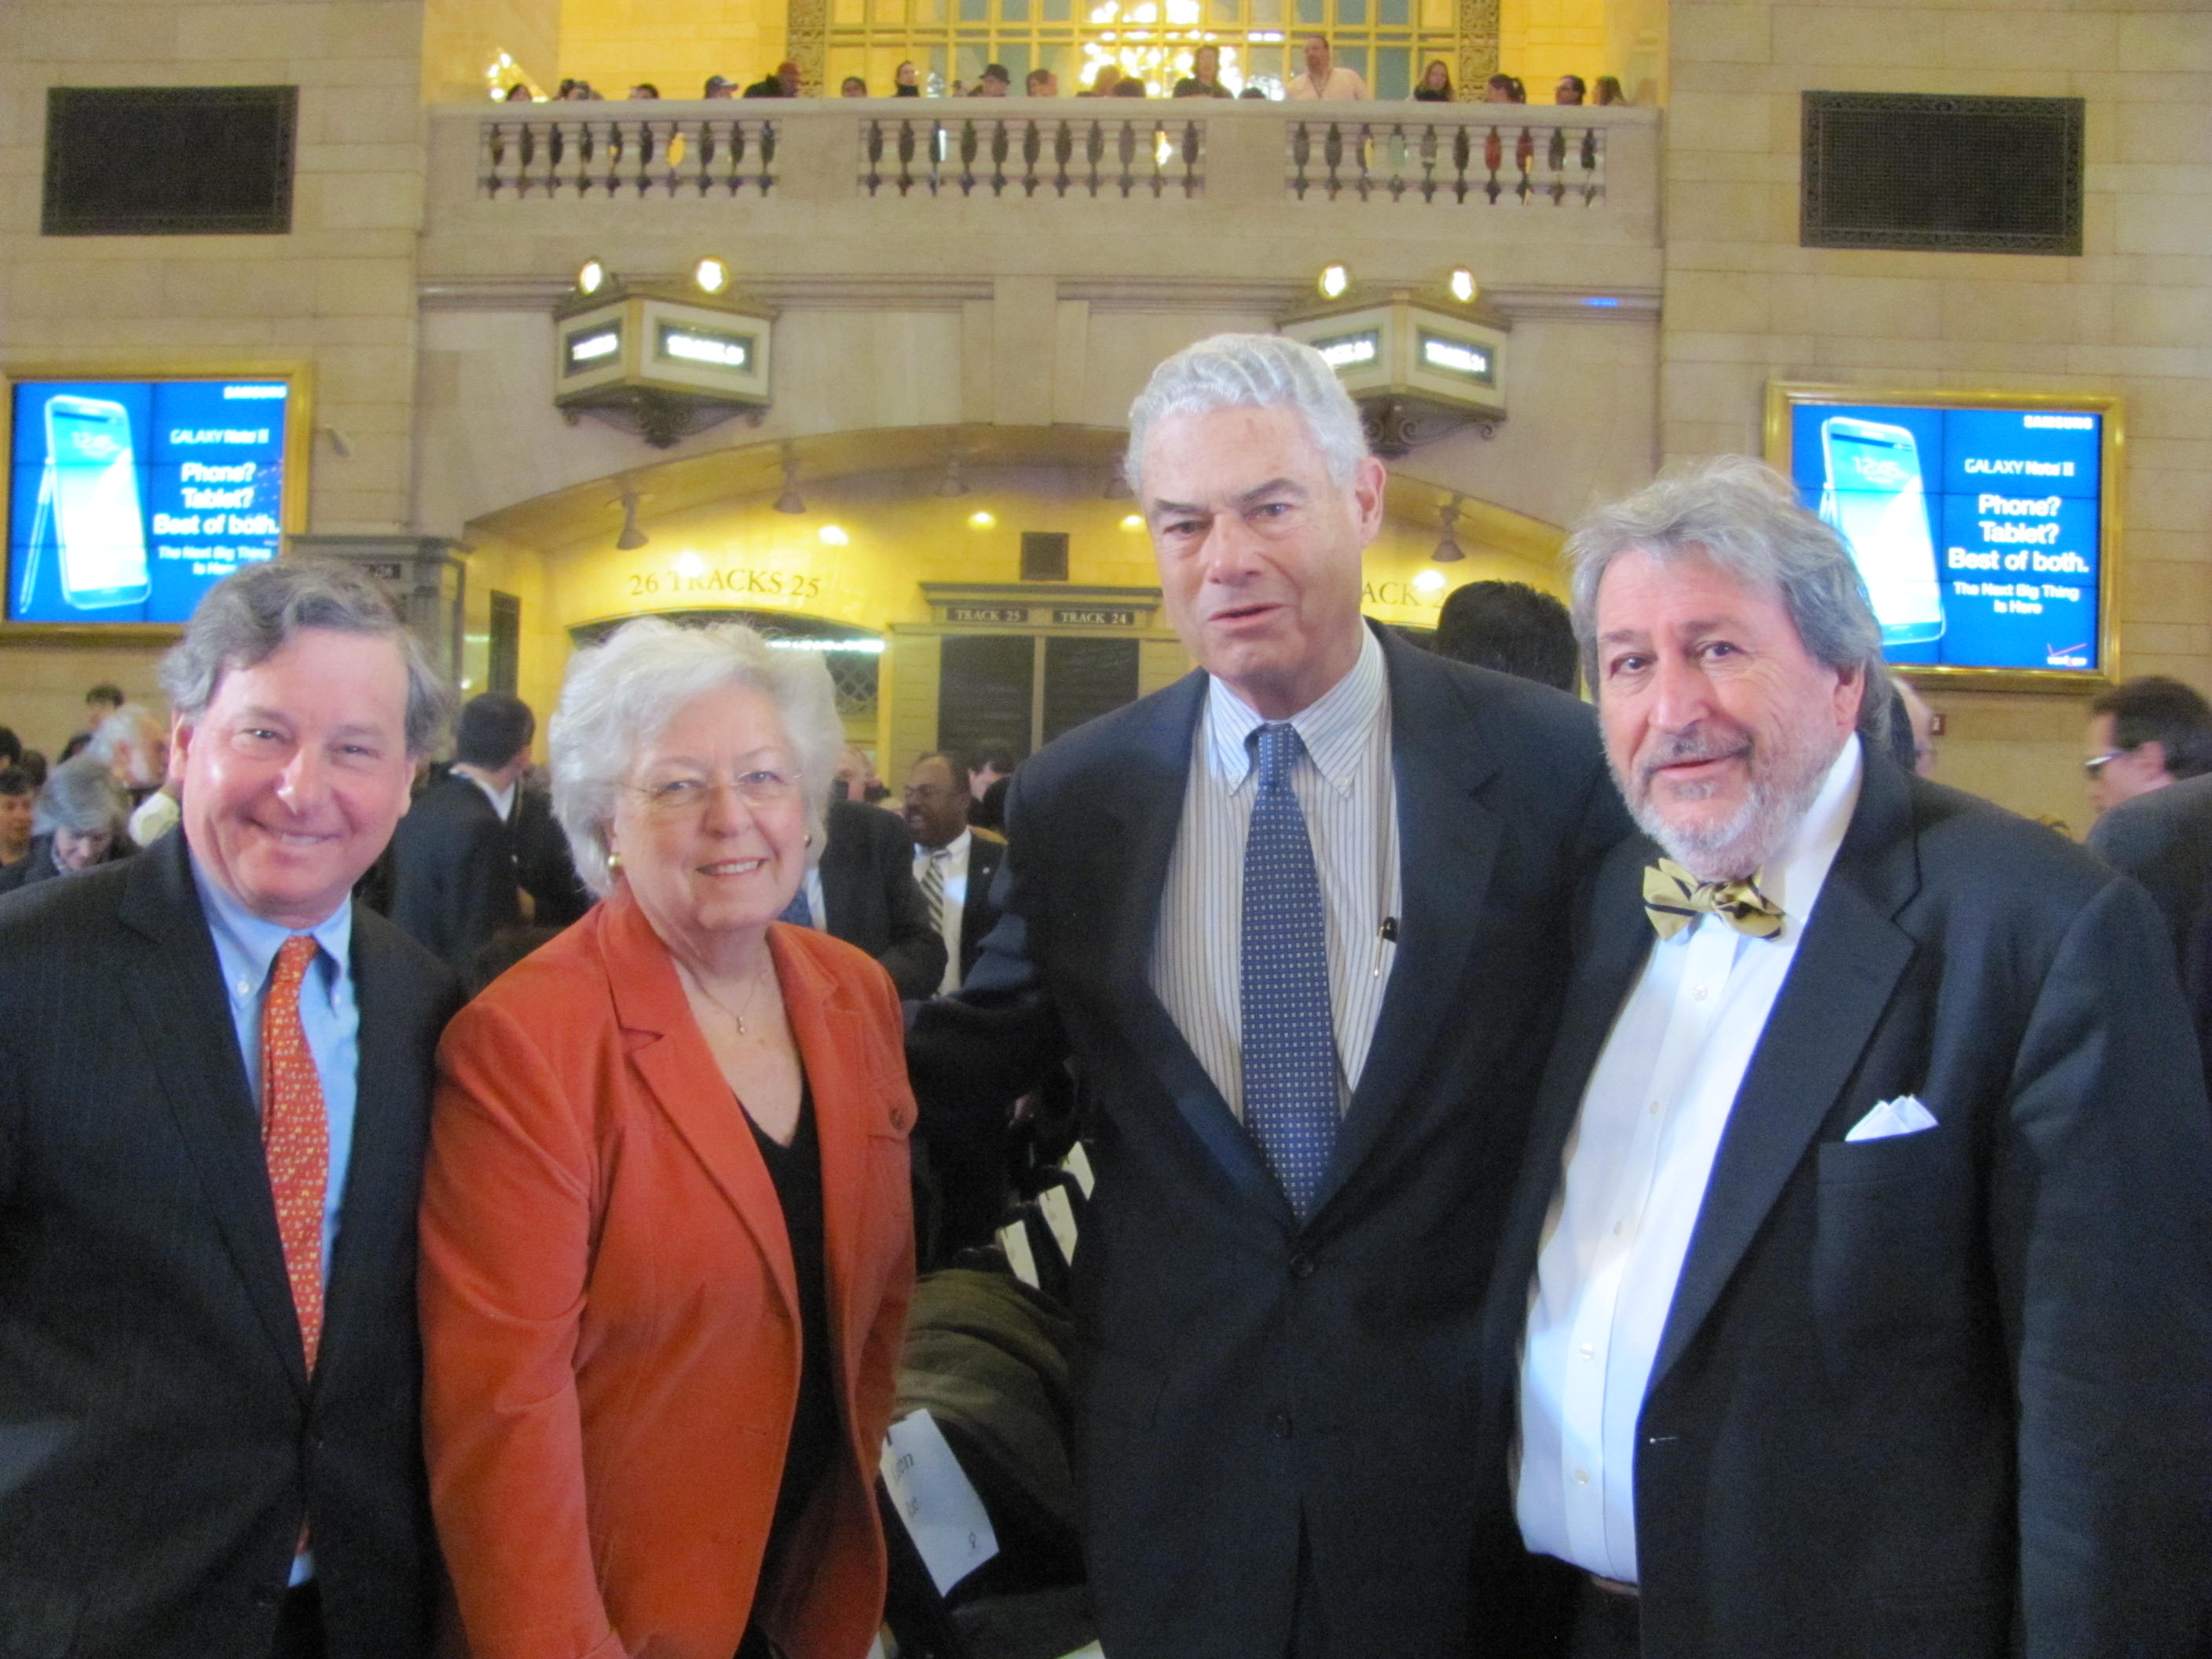 Assemblyman Otis attends the Centennial Celebration of Grand Central Terminal.